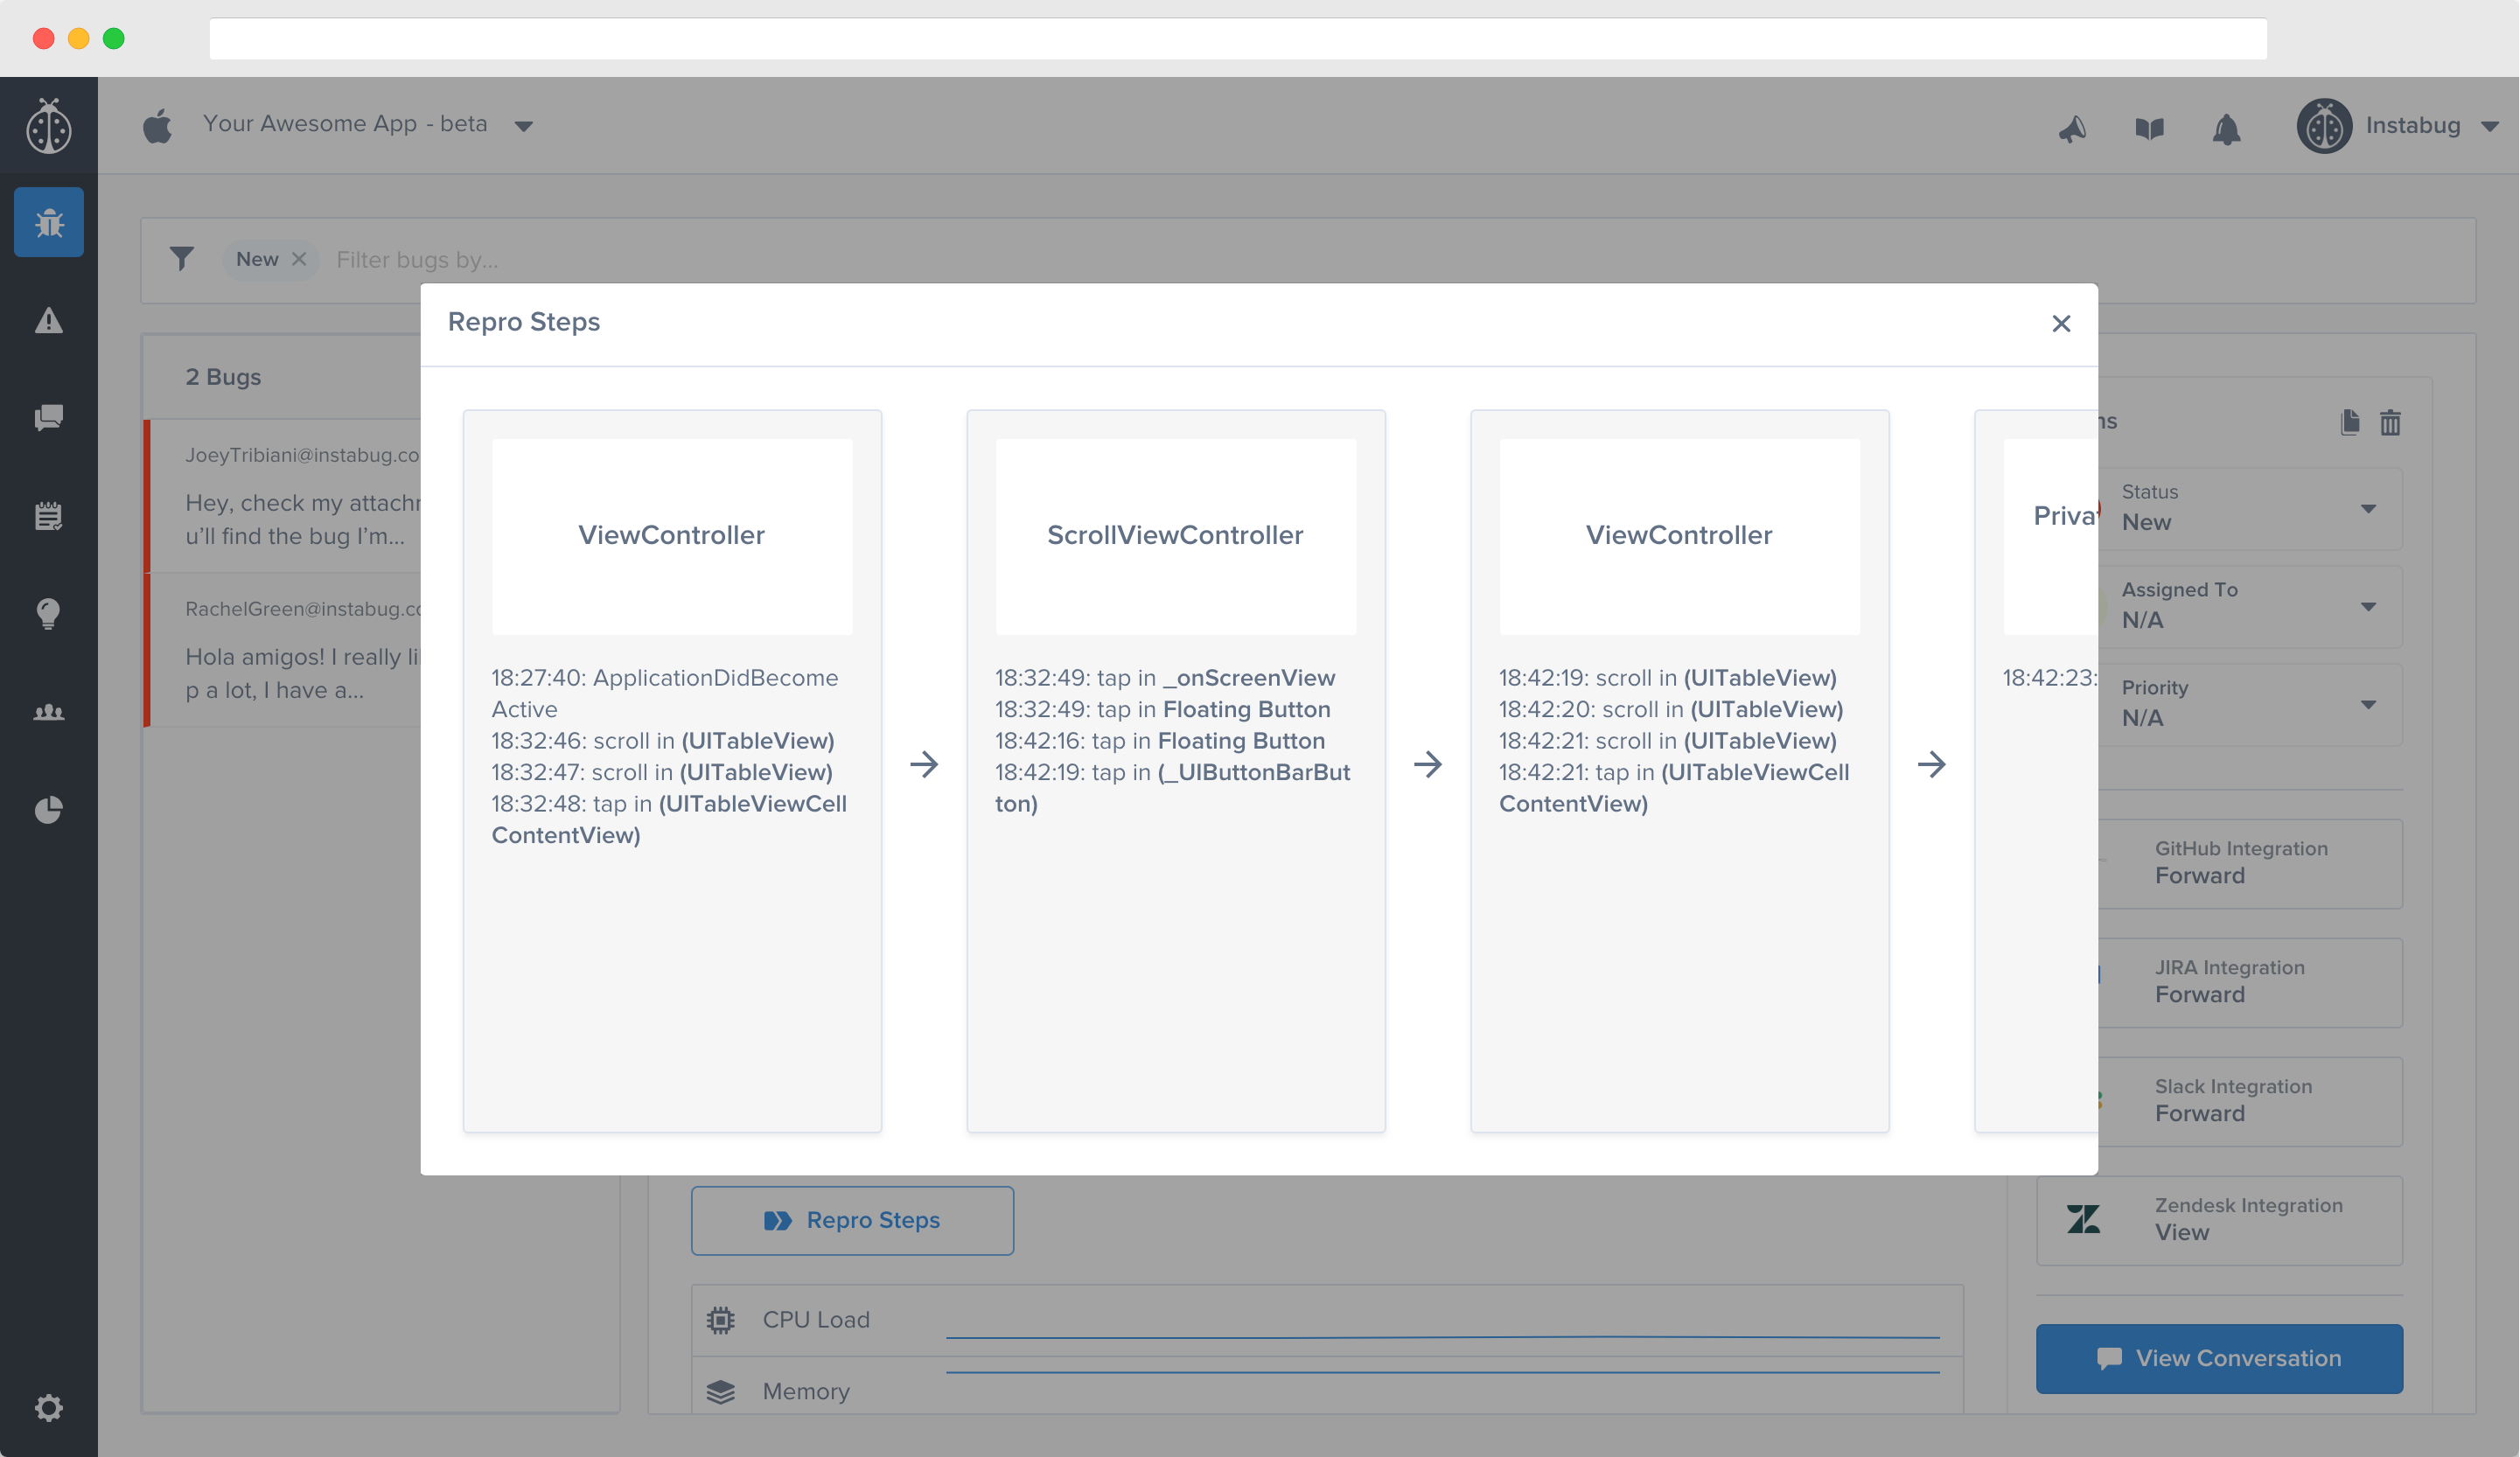 An example of Visual Repro Steps in the Instabug dashboard.